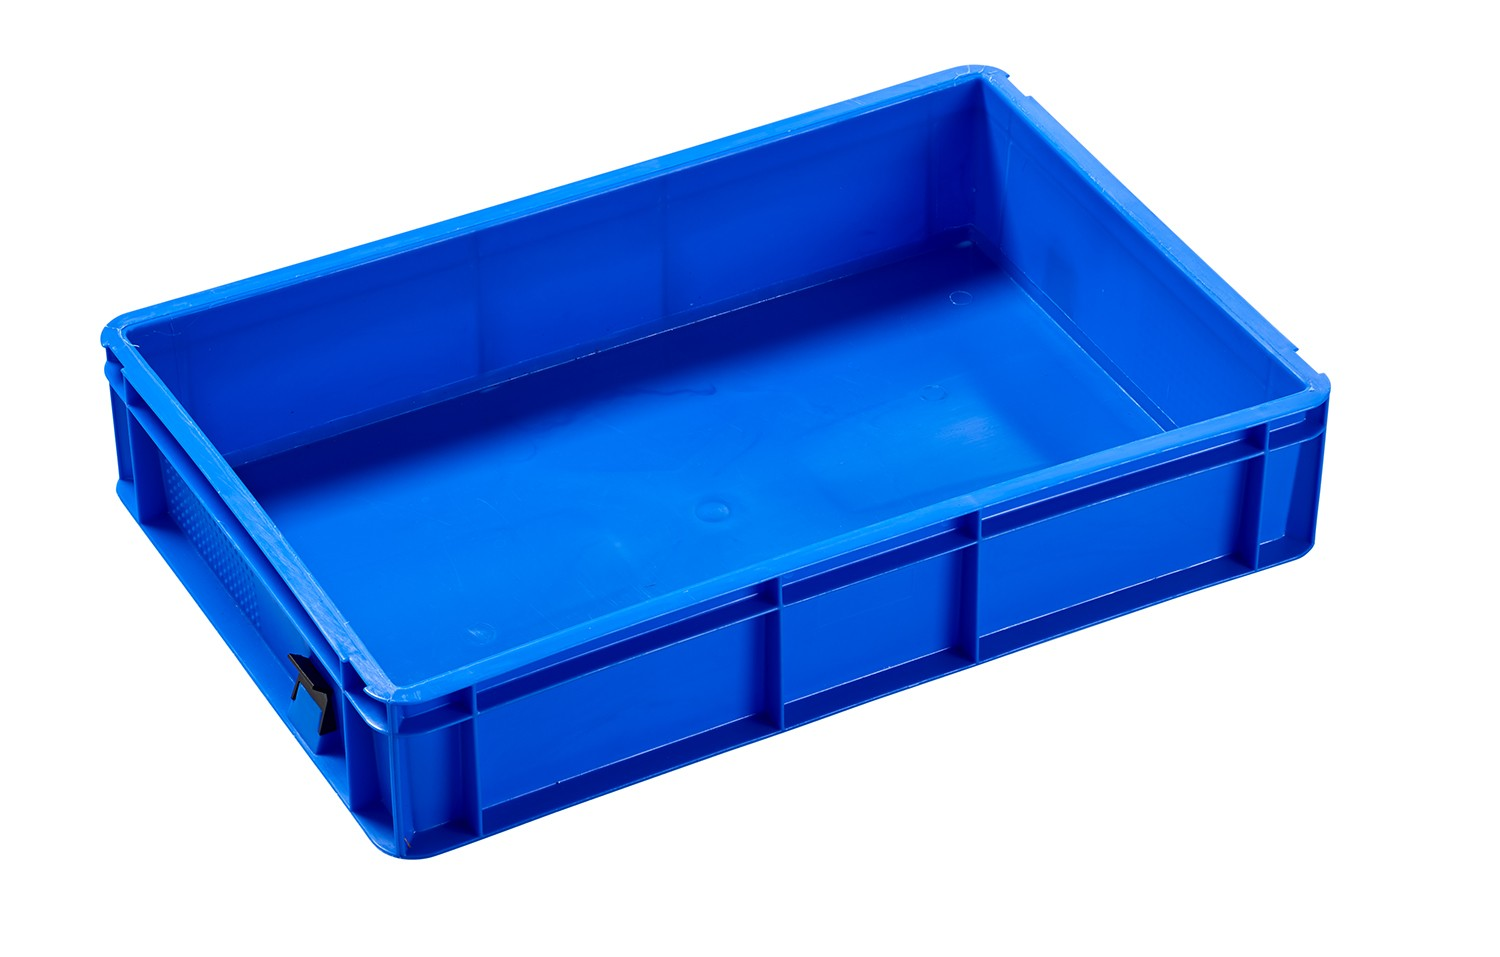 Euro Stacking Container Plastic Stacking Trays Euro